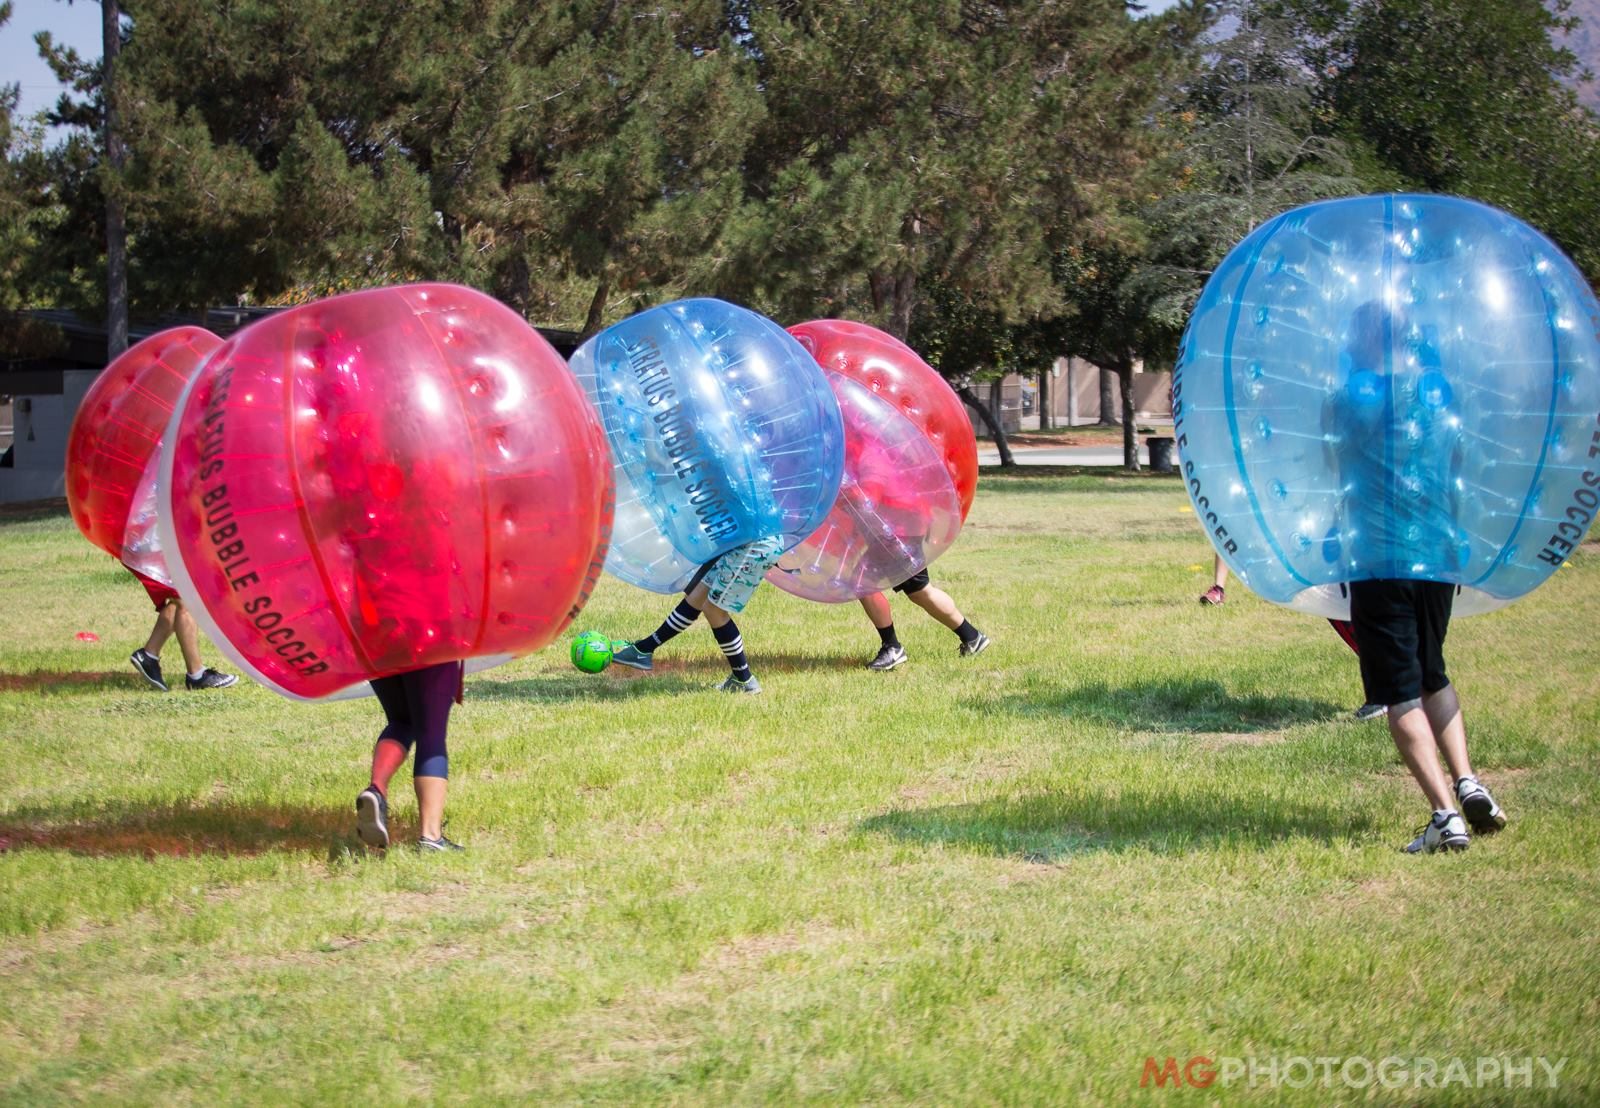 What are those giant inflatable things at the park that people are running around in? It's called bubble soccer